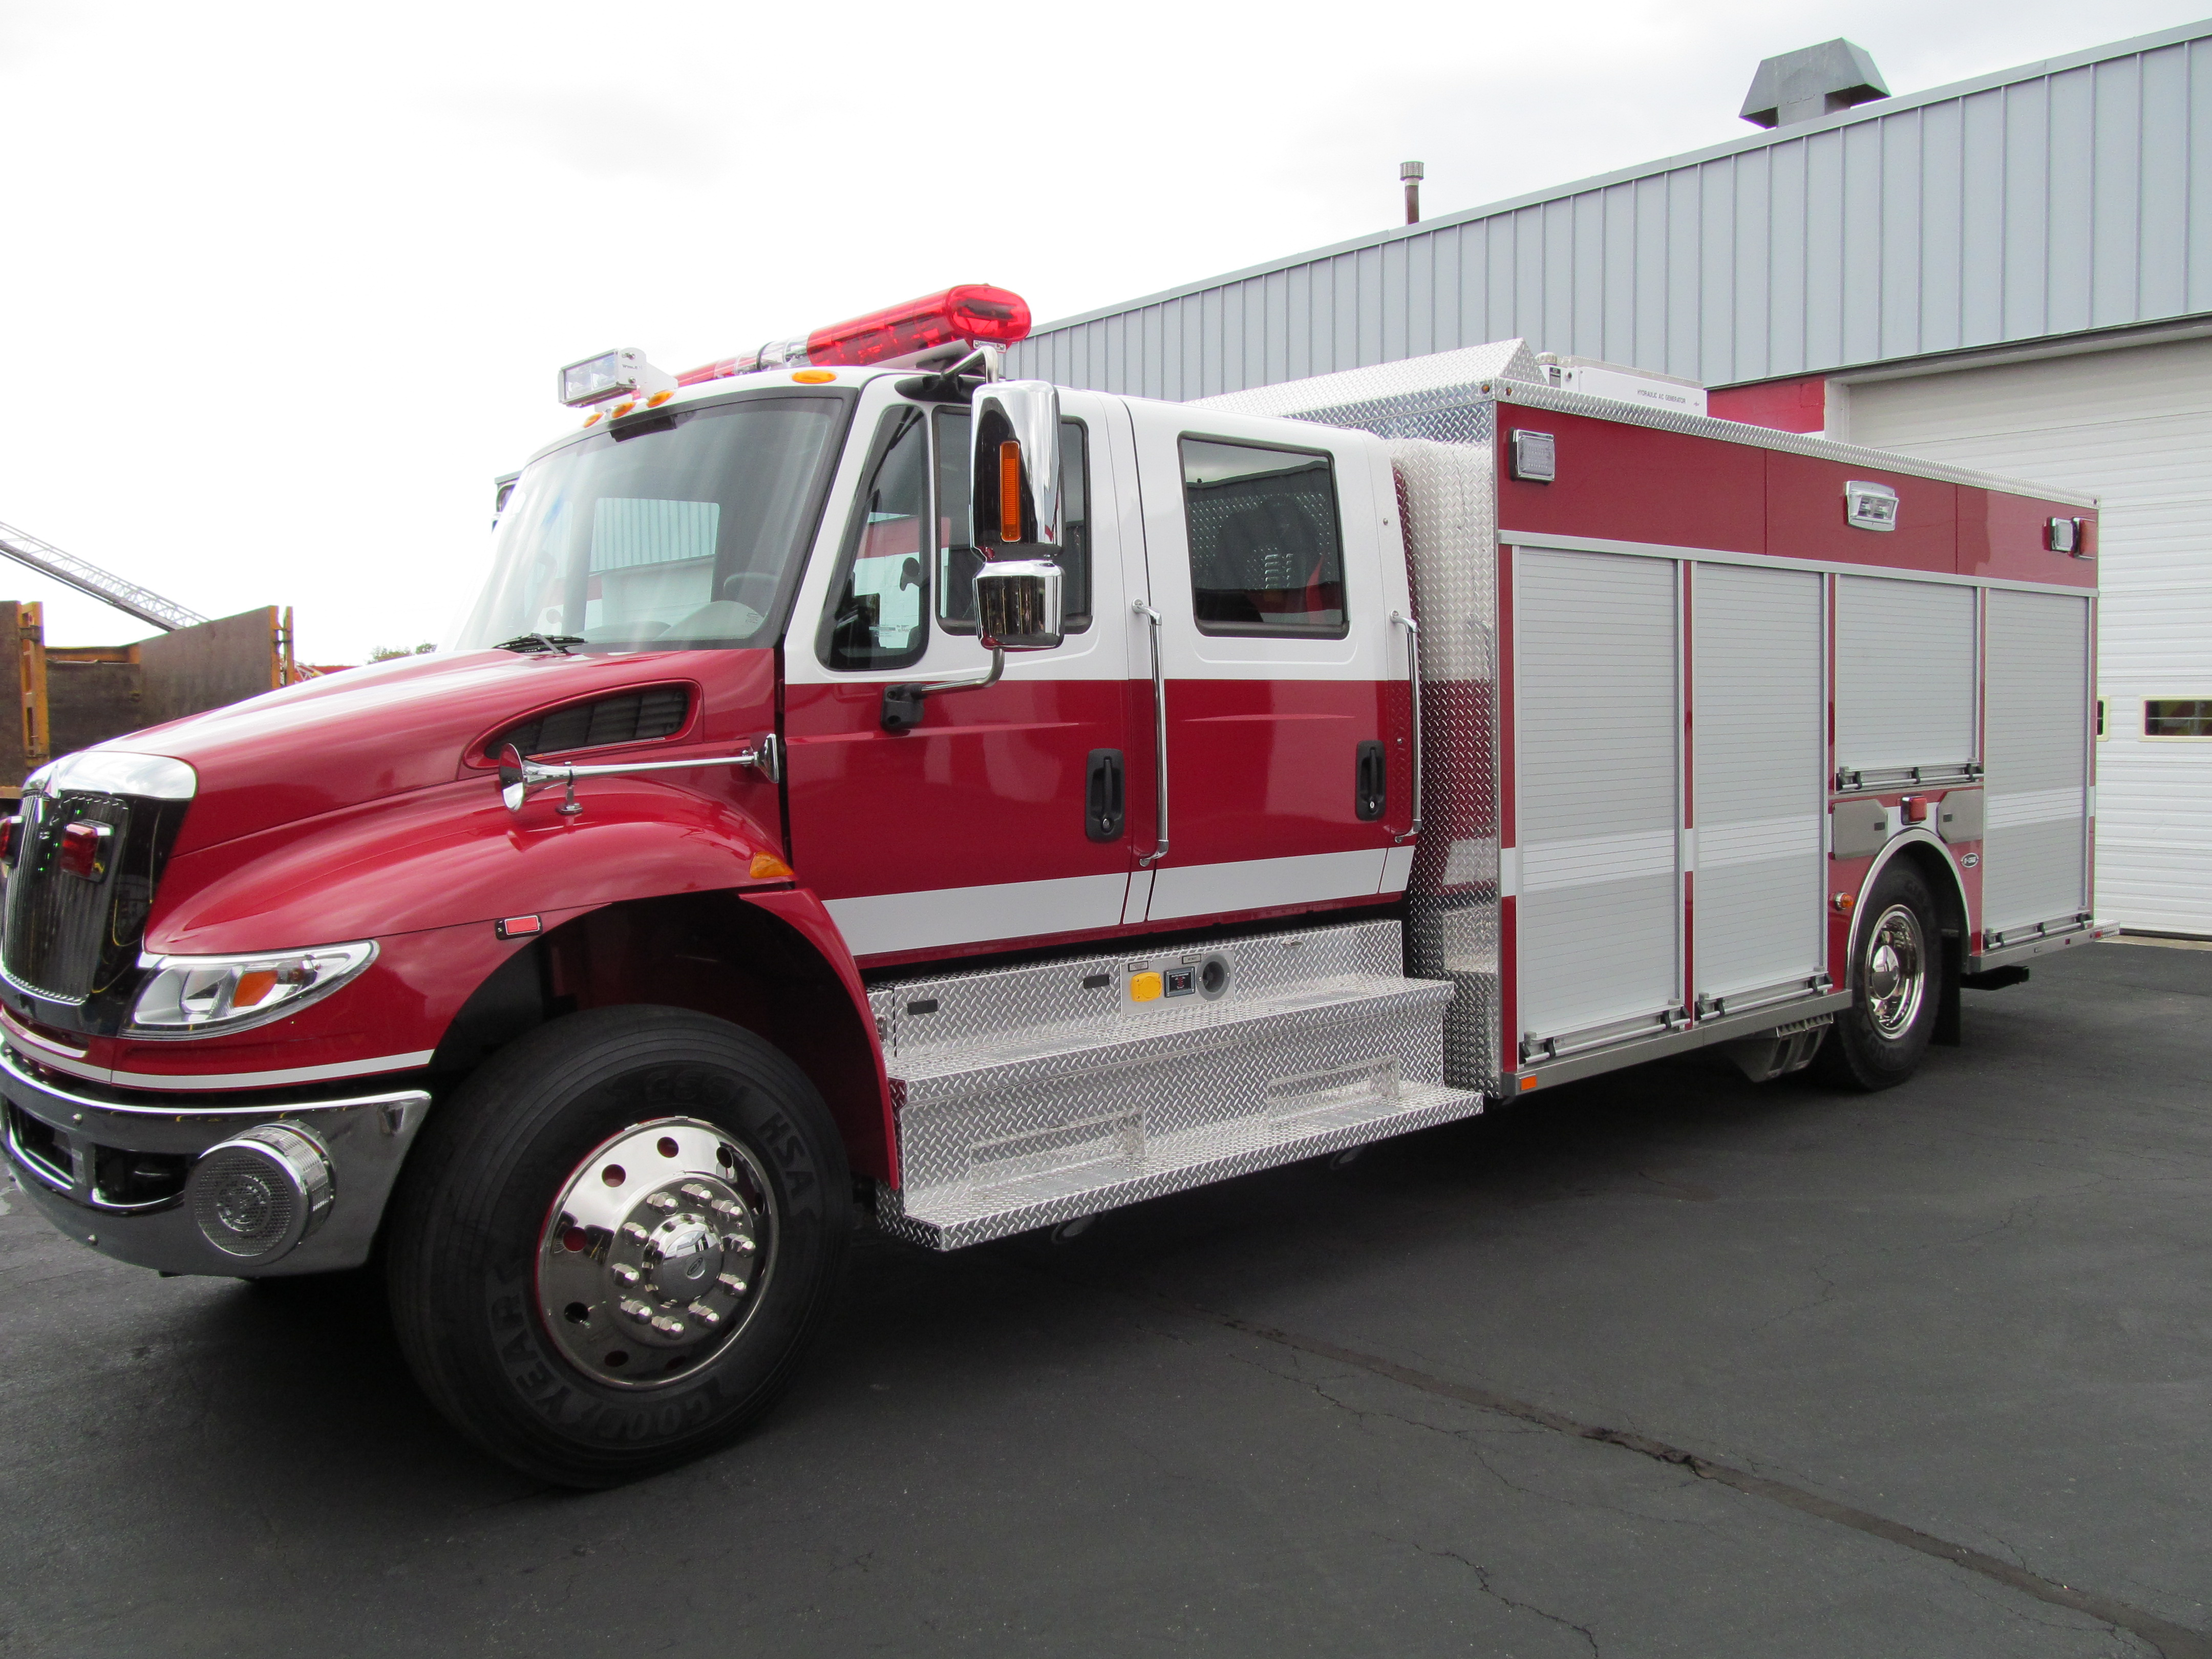 Saint Paul BLVD Fire Department - New Stainless Heavy Rescue